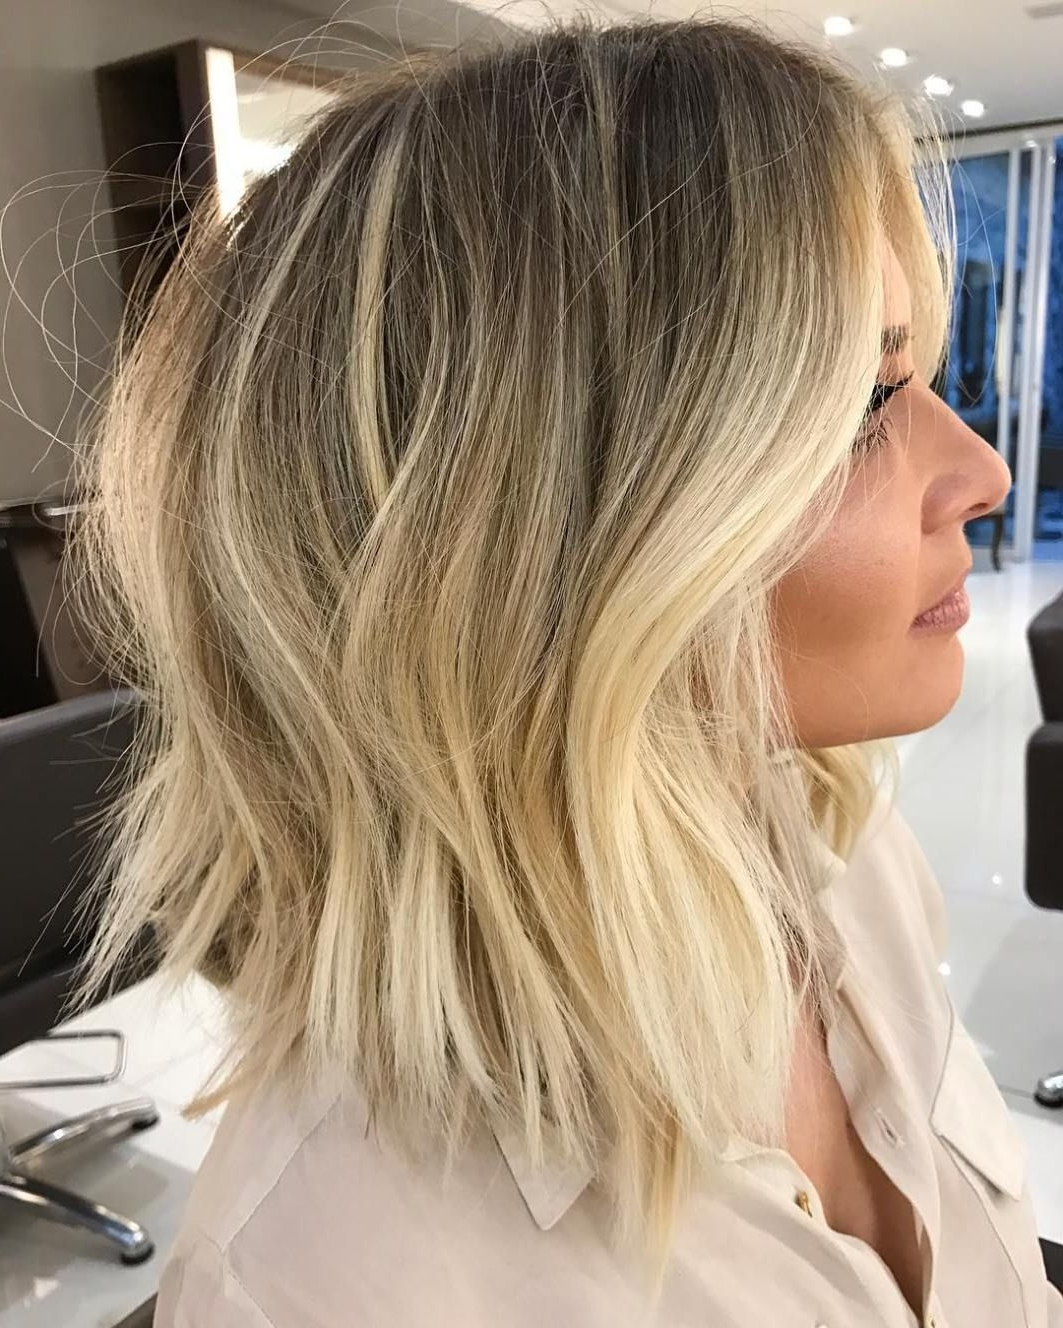 Famous Dark And Light Contrasting Blonde Lob Hairstyles For 40 Banging Blonde Bob And Blonde Lob Hairstyles In  (View 9 of 20)